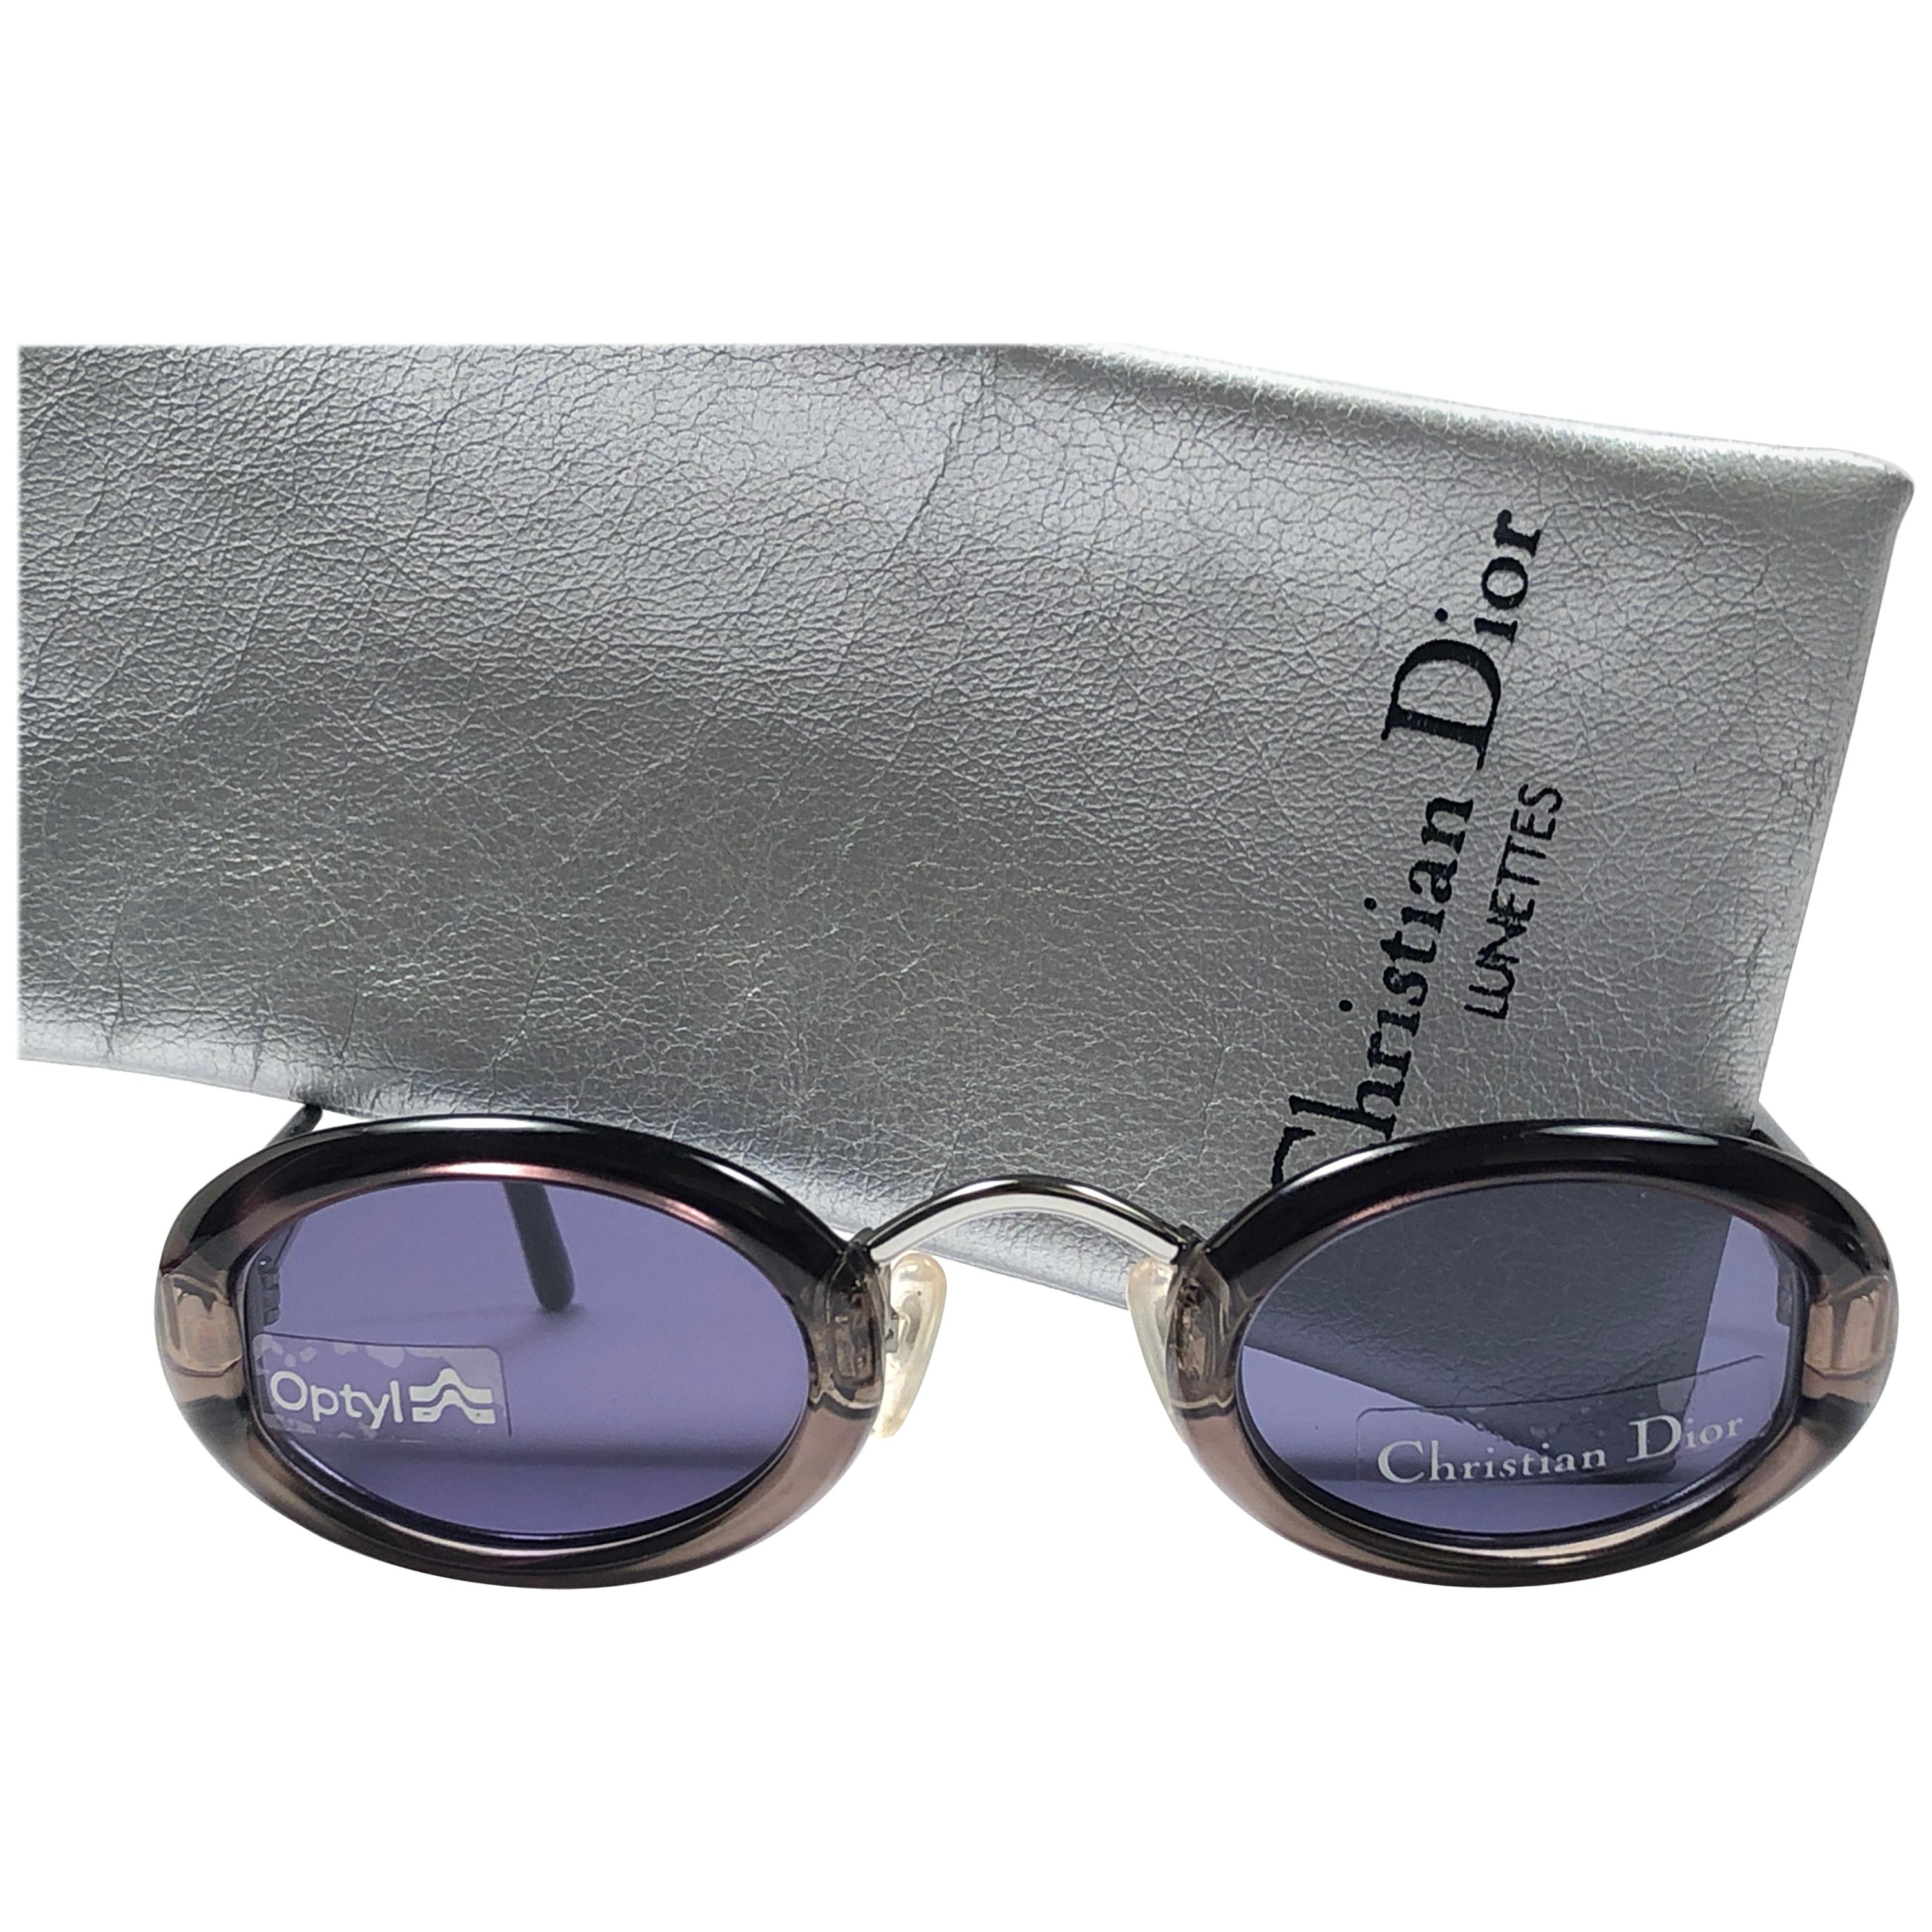 7e8a8b5940 Vintage Christian Dior Accessories - 400 For Sale at 1stdibs - Page 2